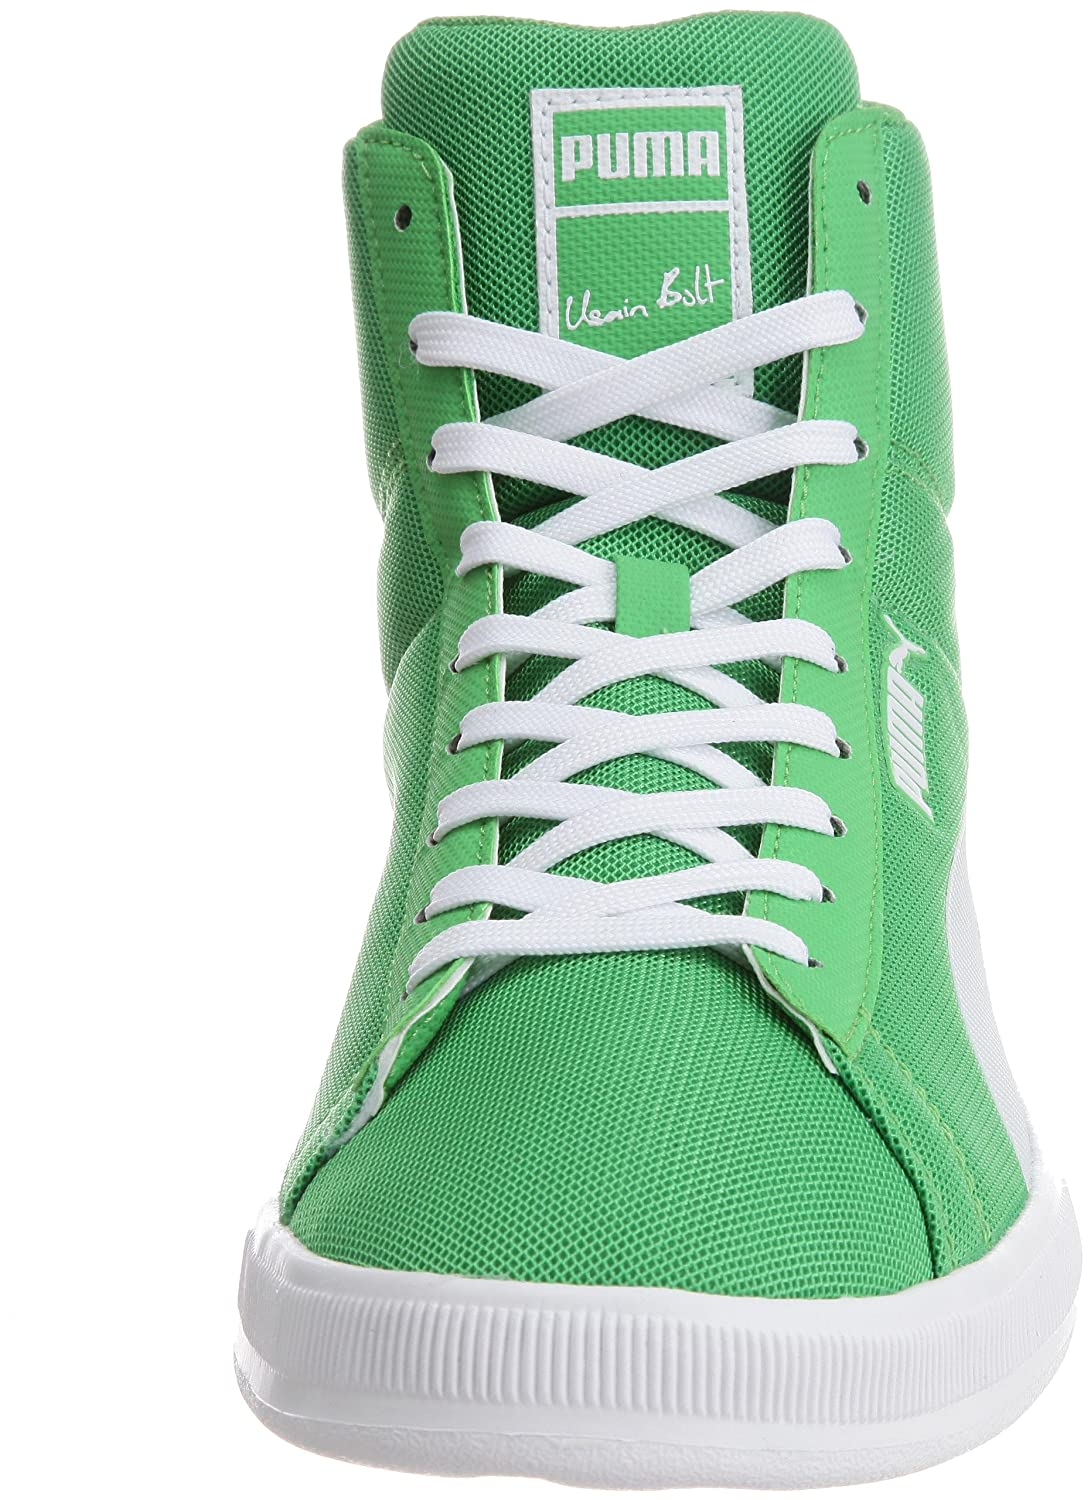 Puma 35298701 Men Bolt Lite Green Shoes Best Price in